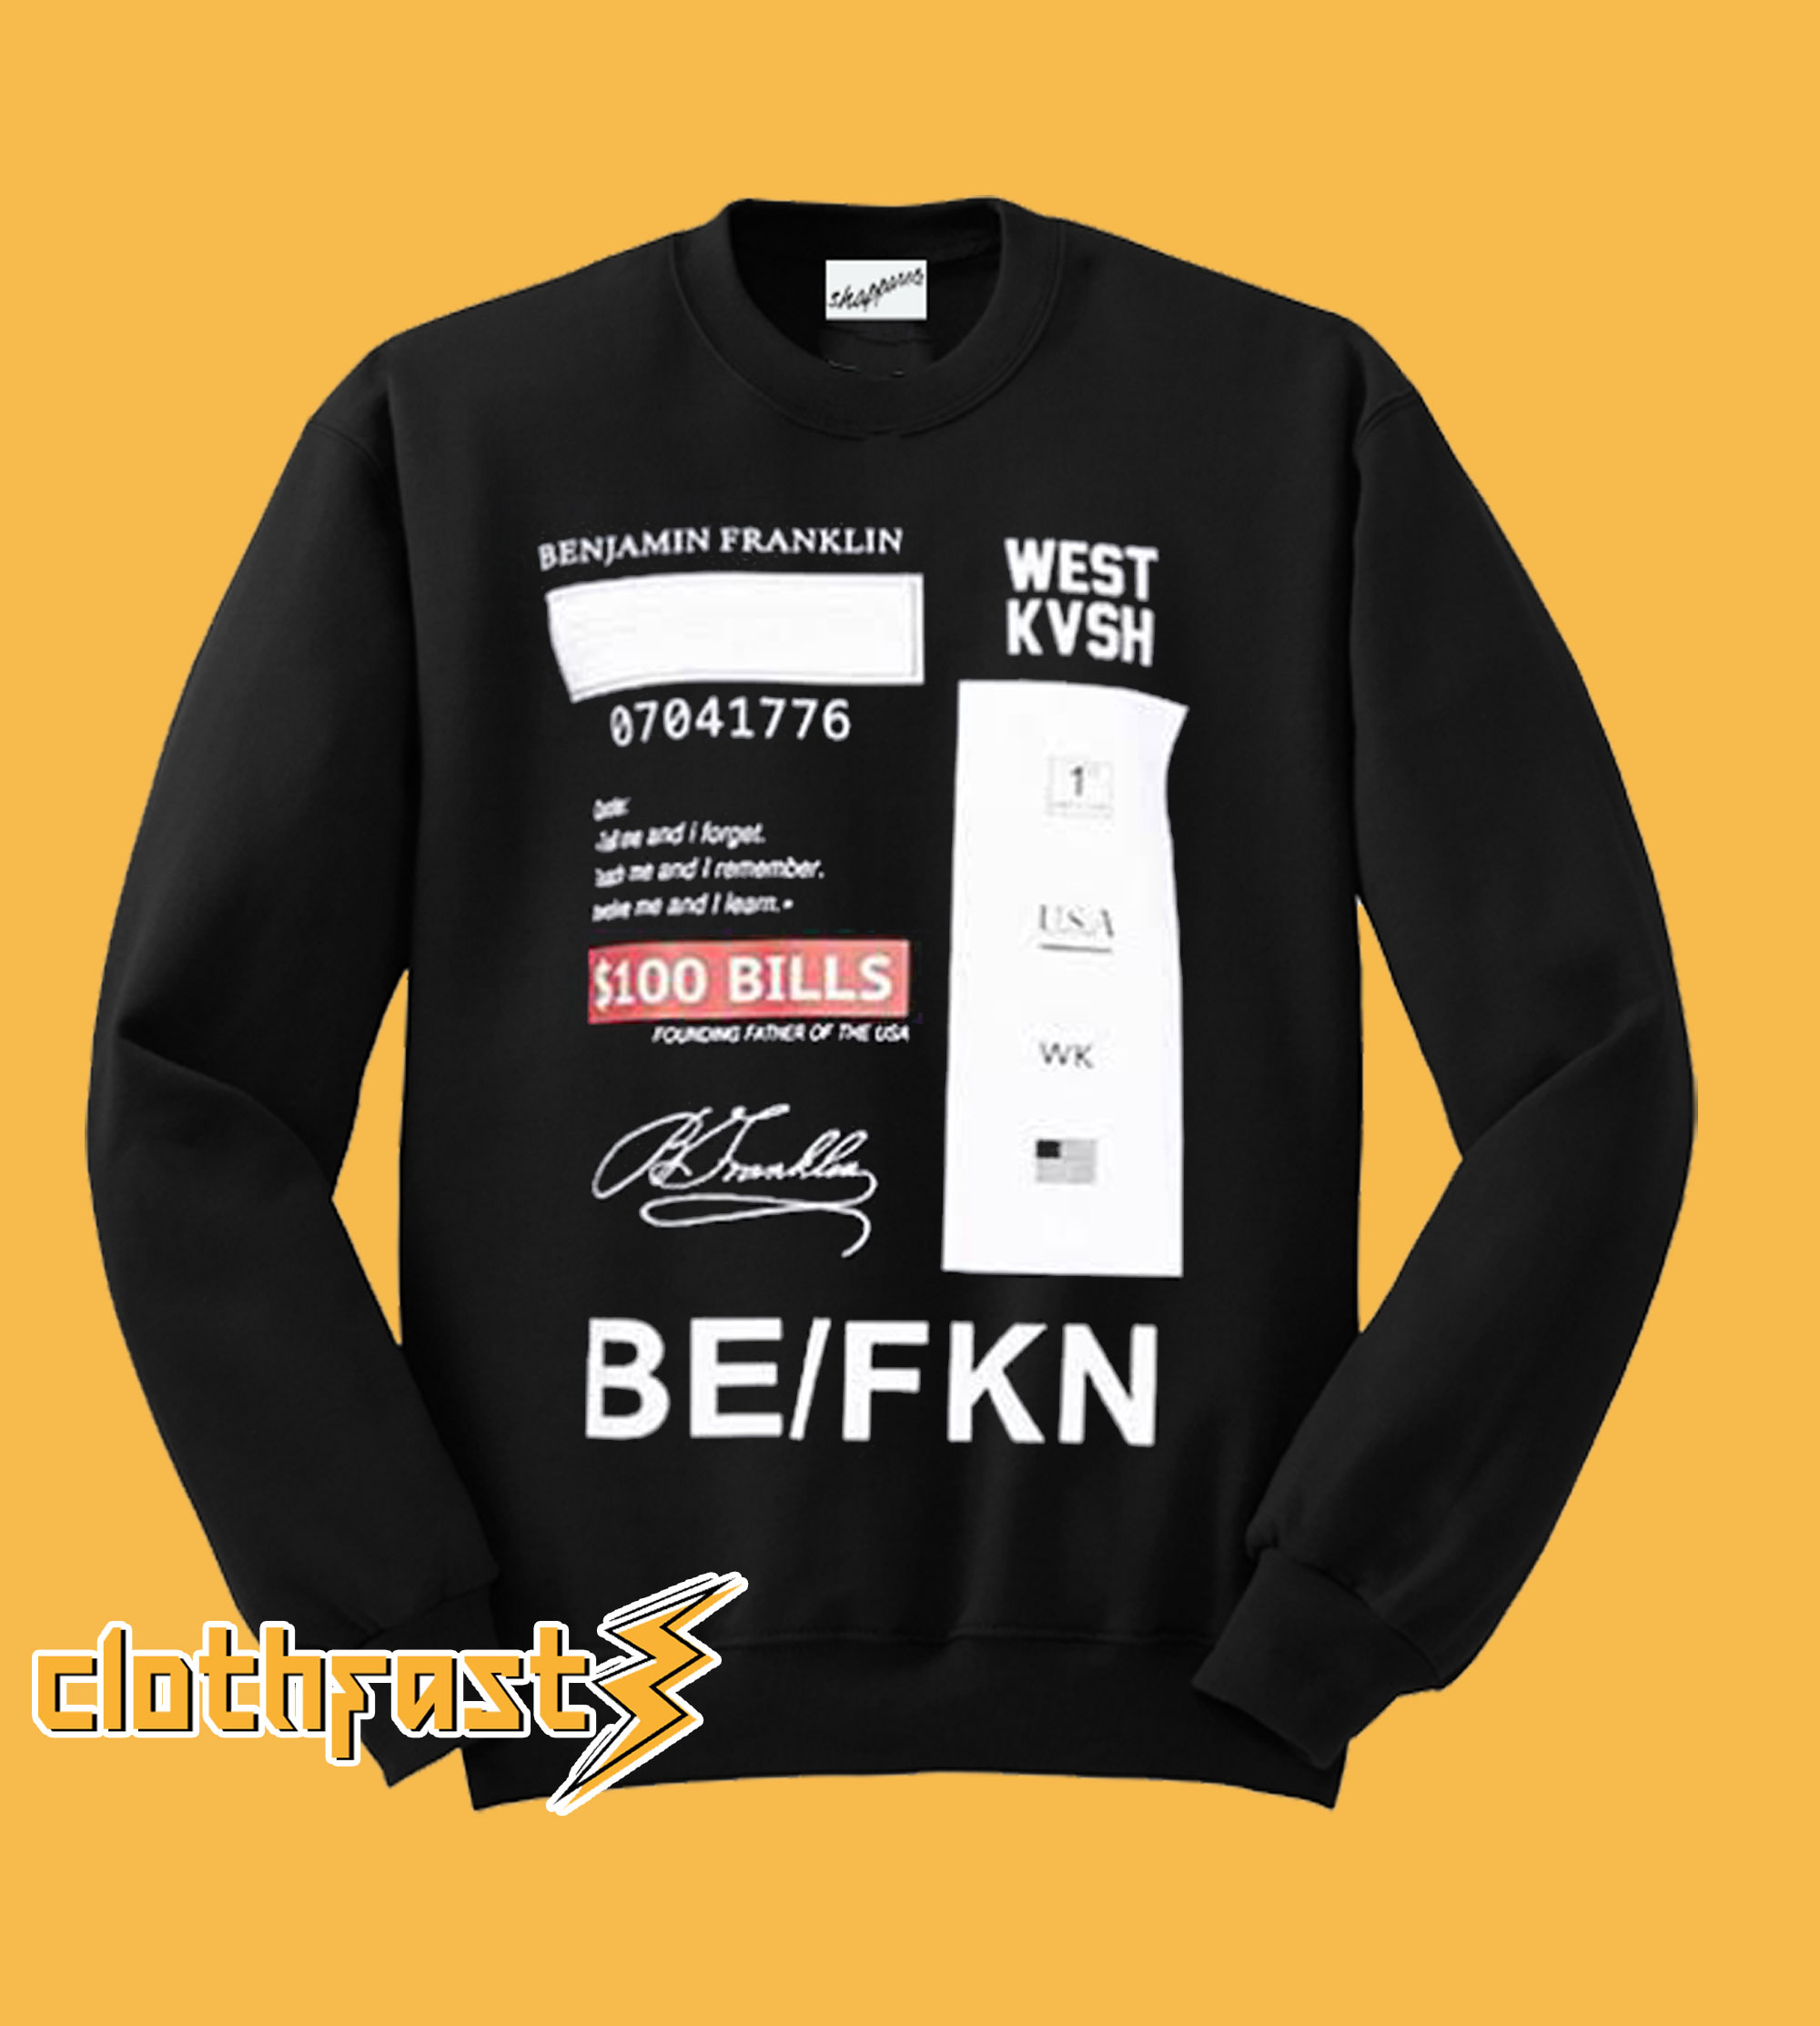 West Kvsh BeFkn Sweatshirt